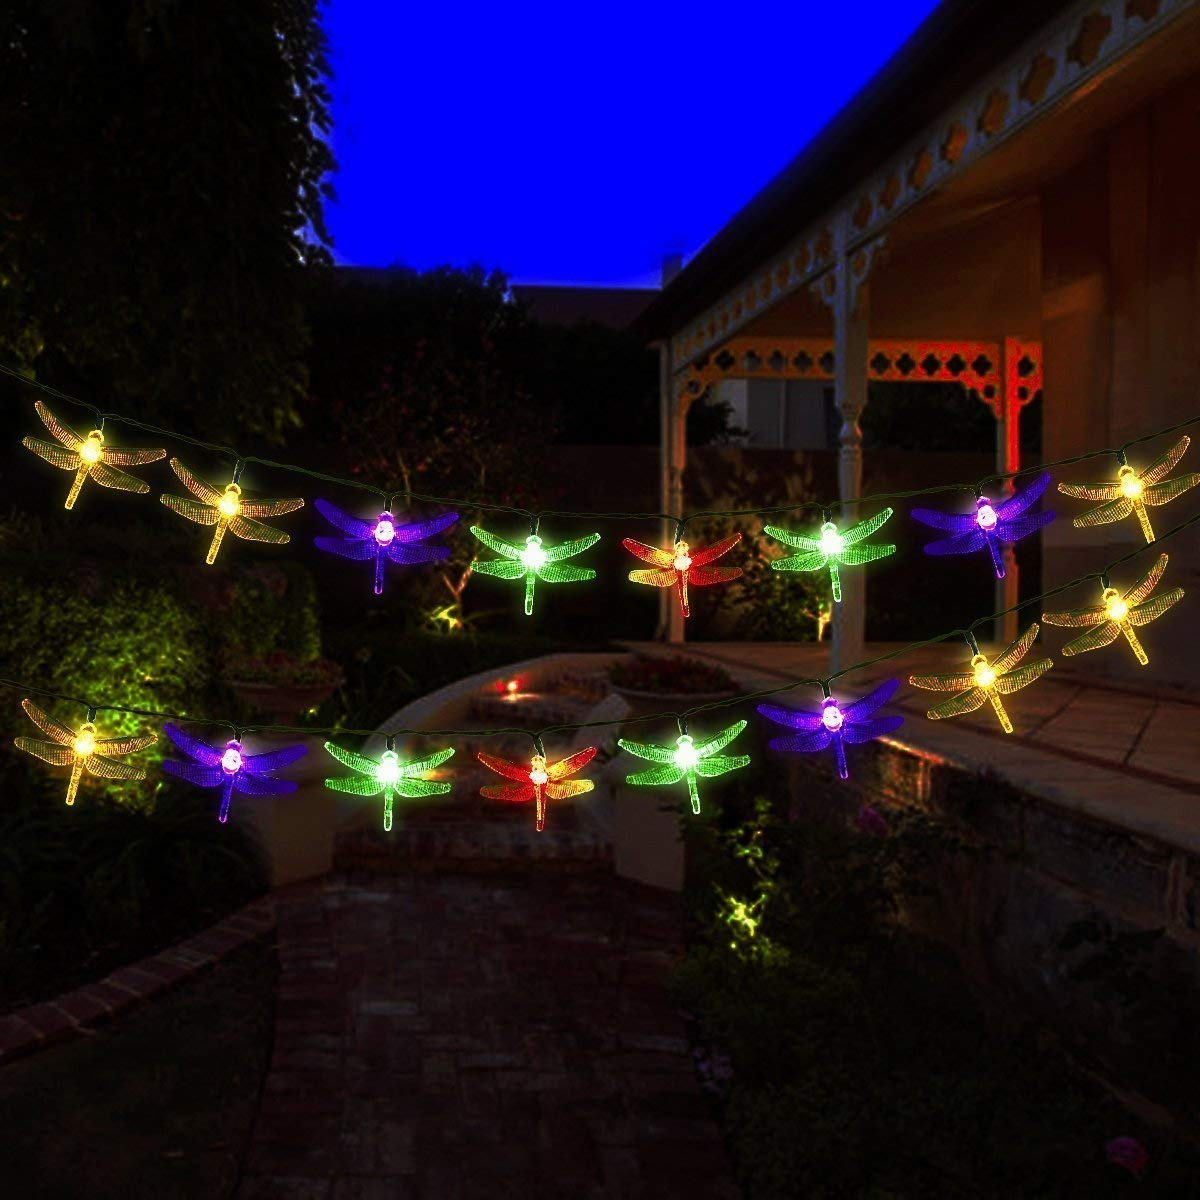 AMZSTAR Solar Powered String Lights,Waterproof 19.7ft 30LED Dragonfly Fairy Lights Decorative Lighting for Indoor/Outdoor Home Garden Lawn Fence Patio Party and Holiday Decorations (Multi-color) by AMZSTAR (Image #7)